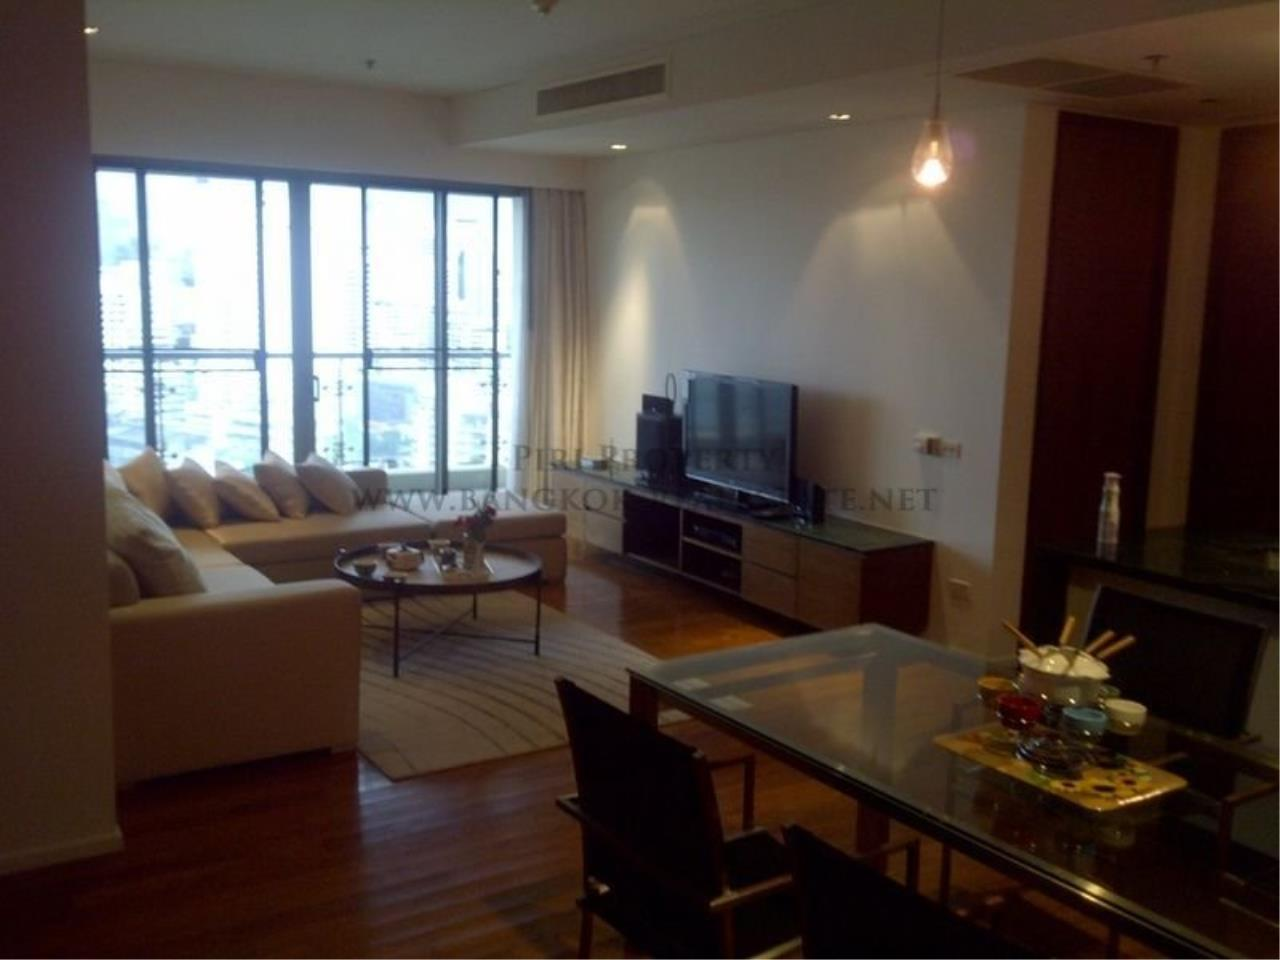 Piri Property Agency's 2 Bedroom Condo in The Lakes building for Rent - High Floor 3